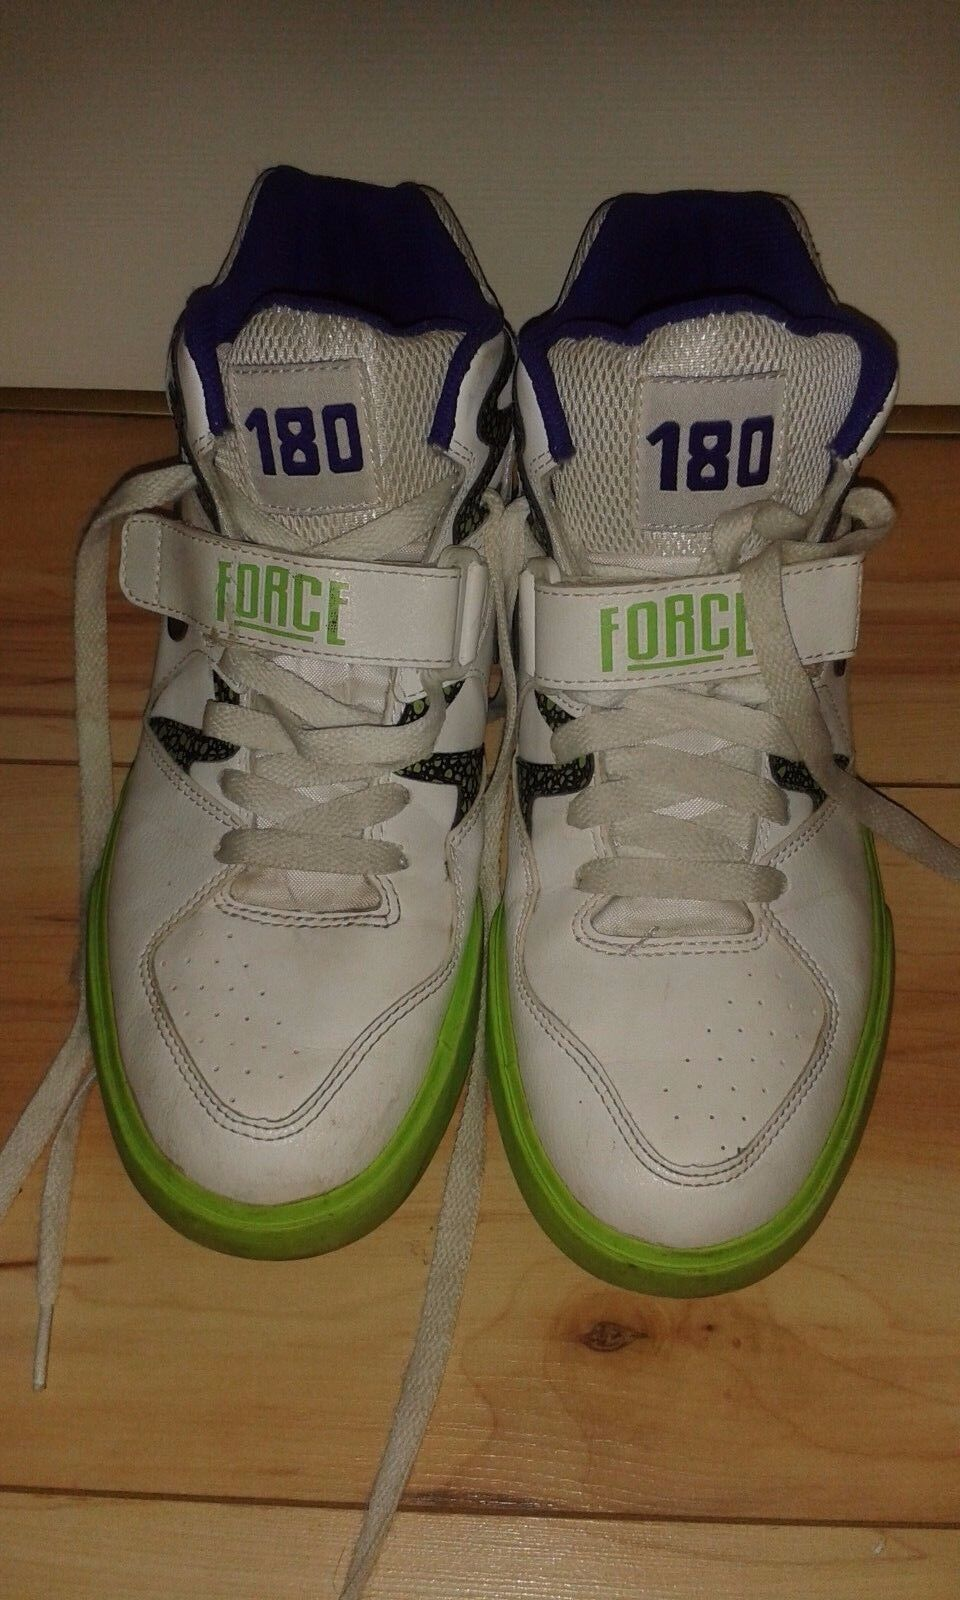 Mens Hi Top Trainers - Nike Auto Force 180 - White & Electric Green -